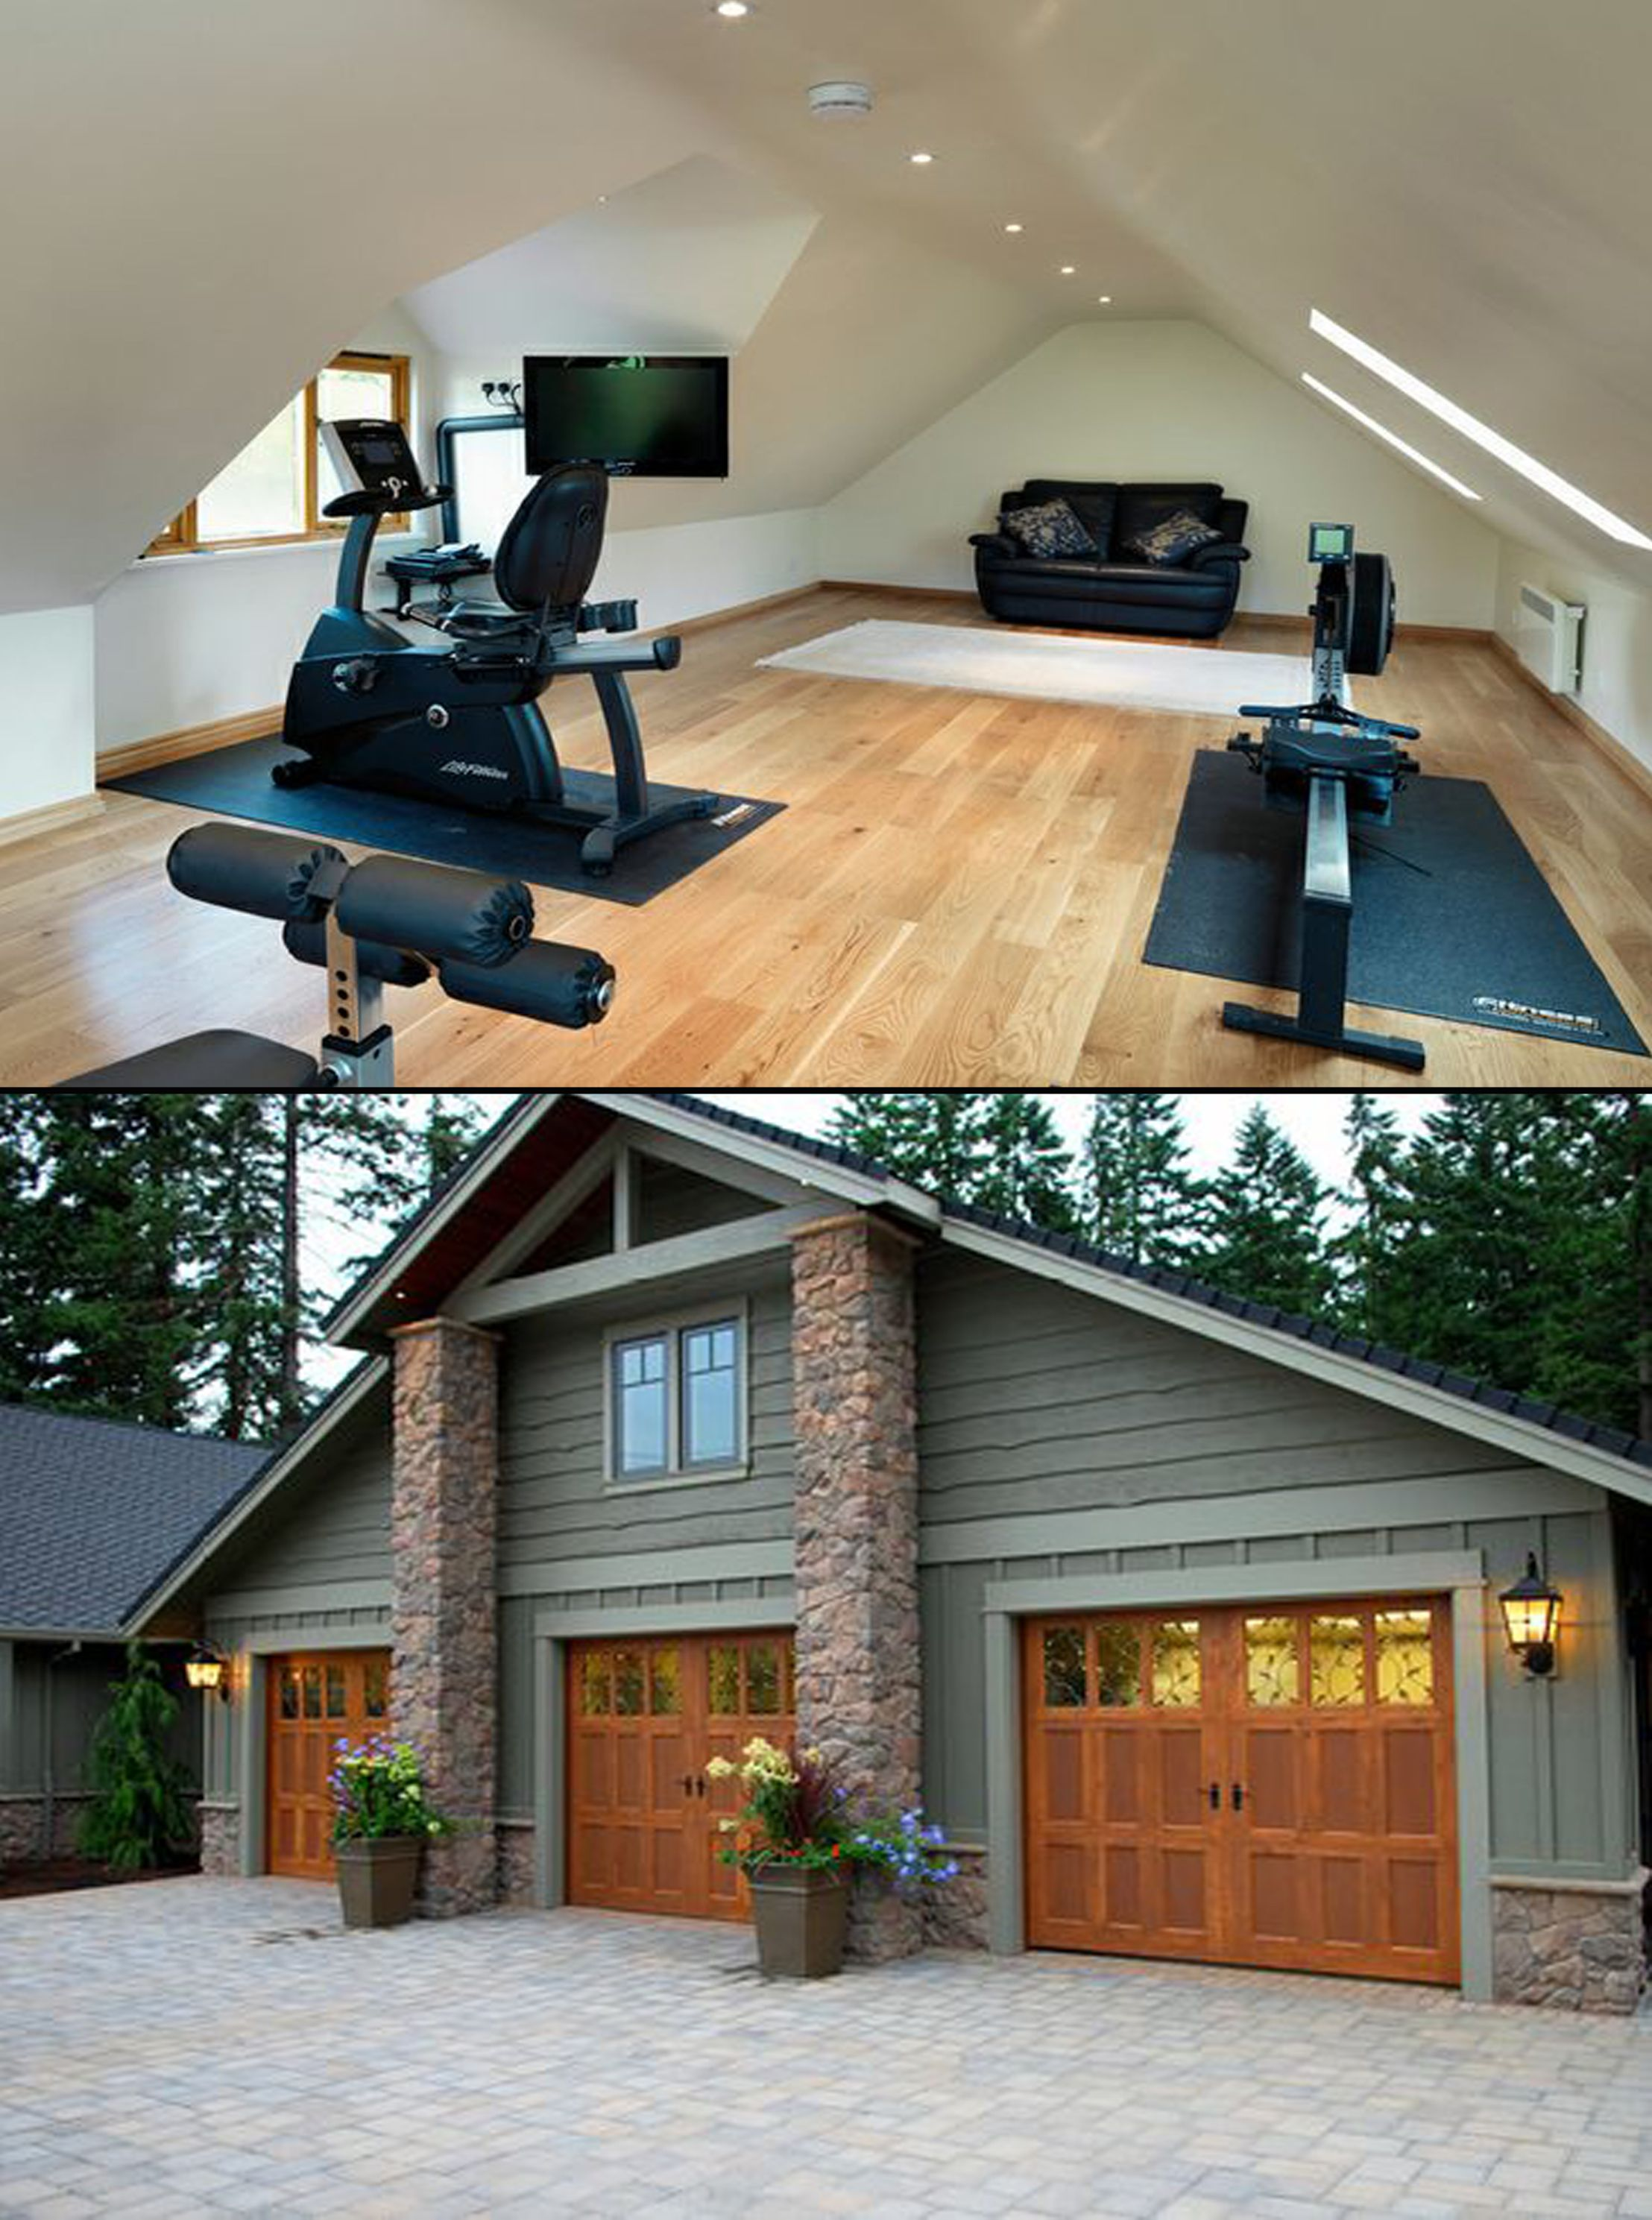 3 Car Garage With Gym Upstairs New Homes Kitchens Bathrooms House